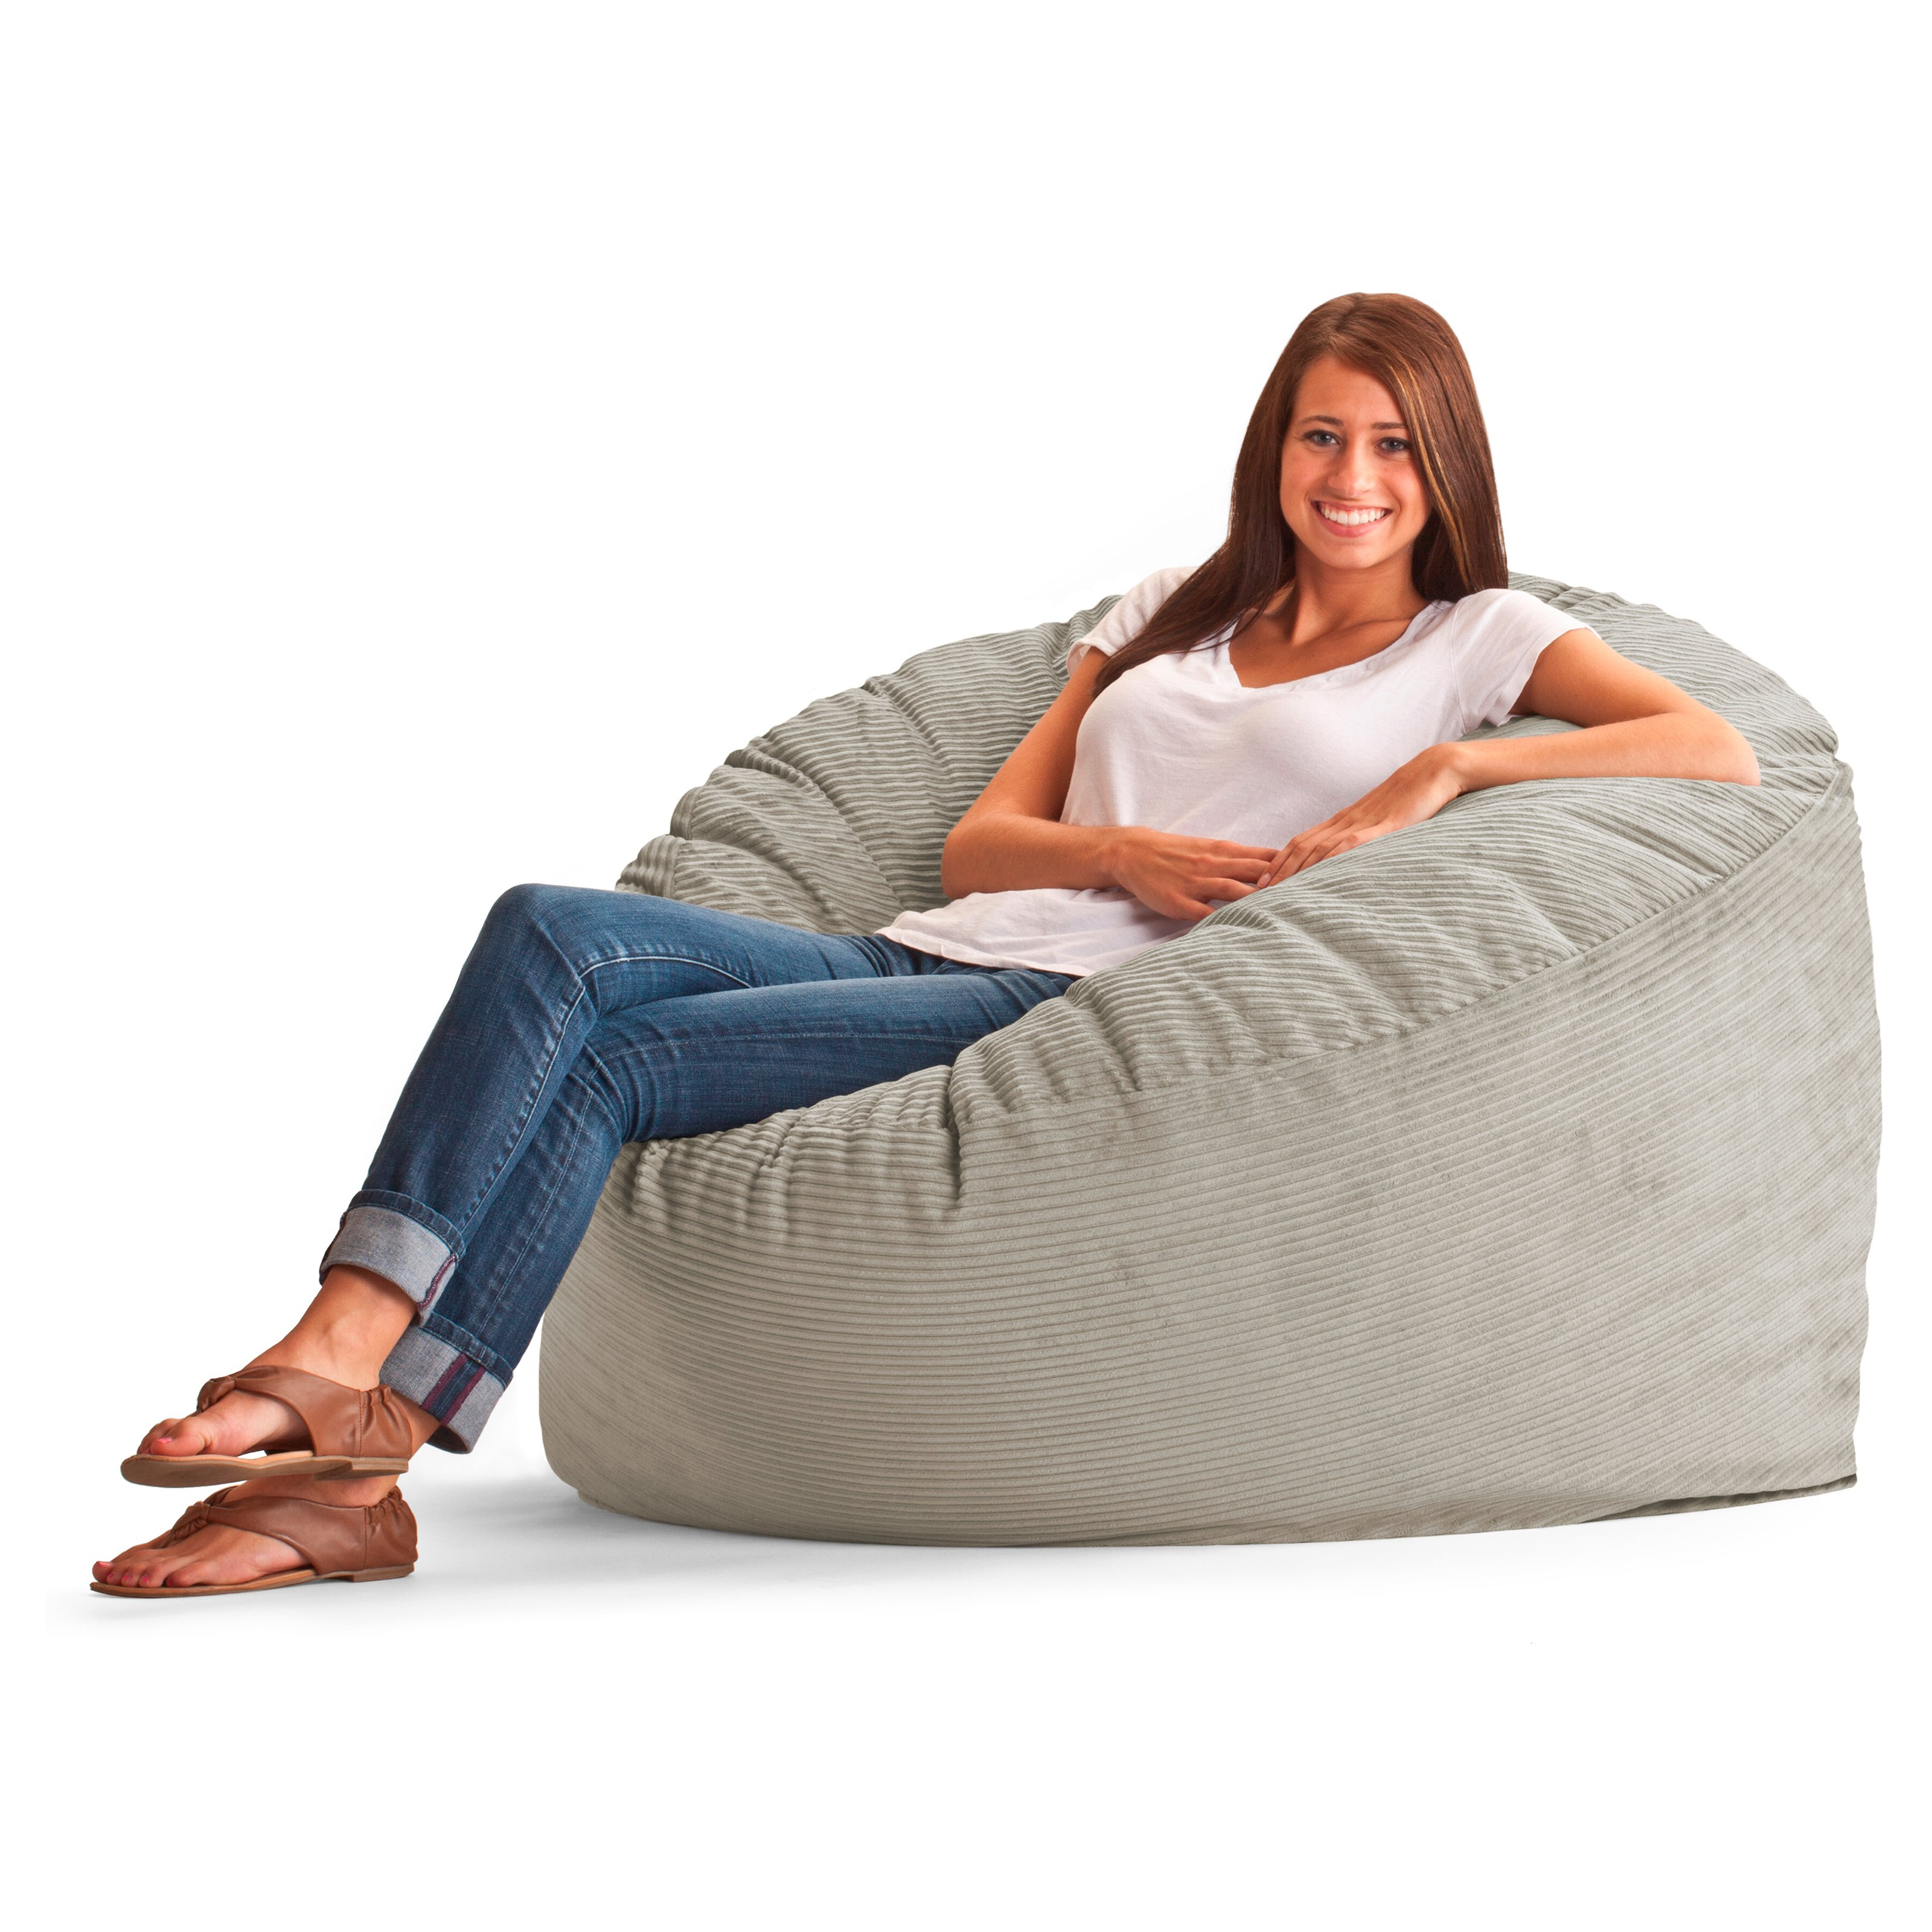 Original FUF Chair 4 Ft. Large Wide Wale Corduroy Bean Bag Lounger   Beach    Walmart.com